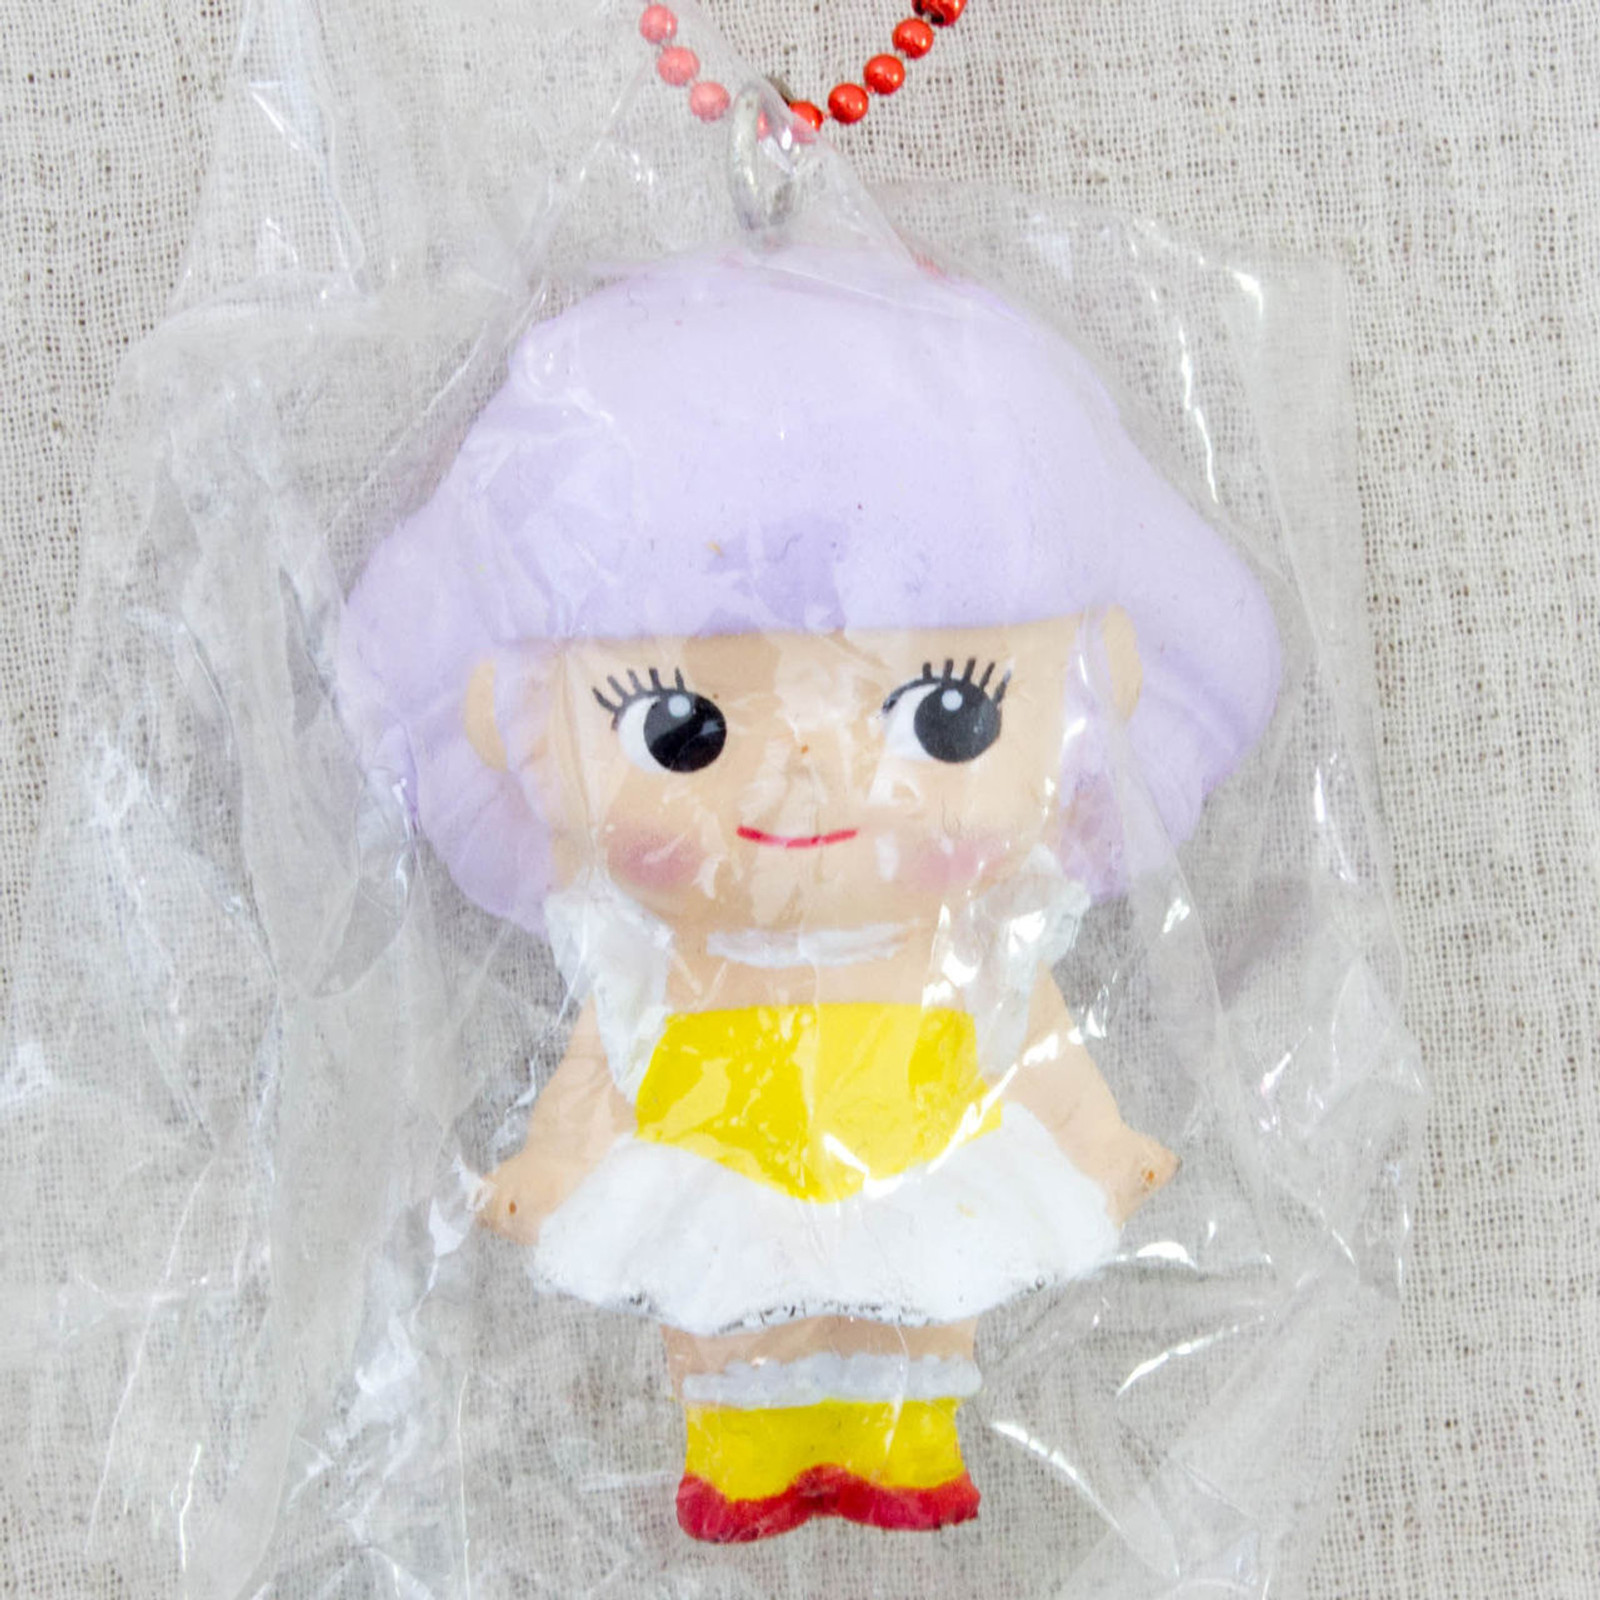 Magic Angel Creamy Mami Squeeze Figure Rose O'neill Kewpie Kewsion Keychain